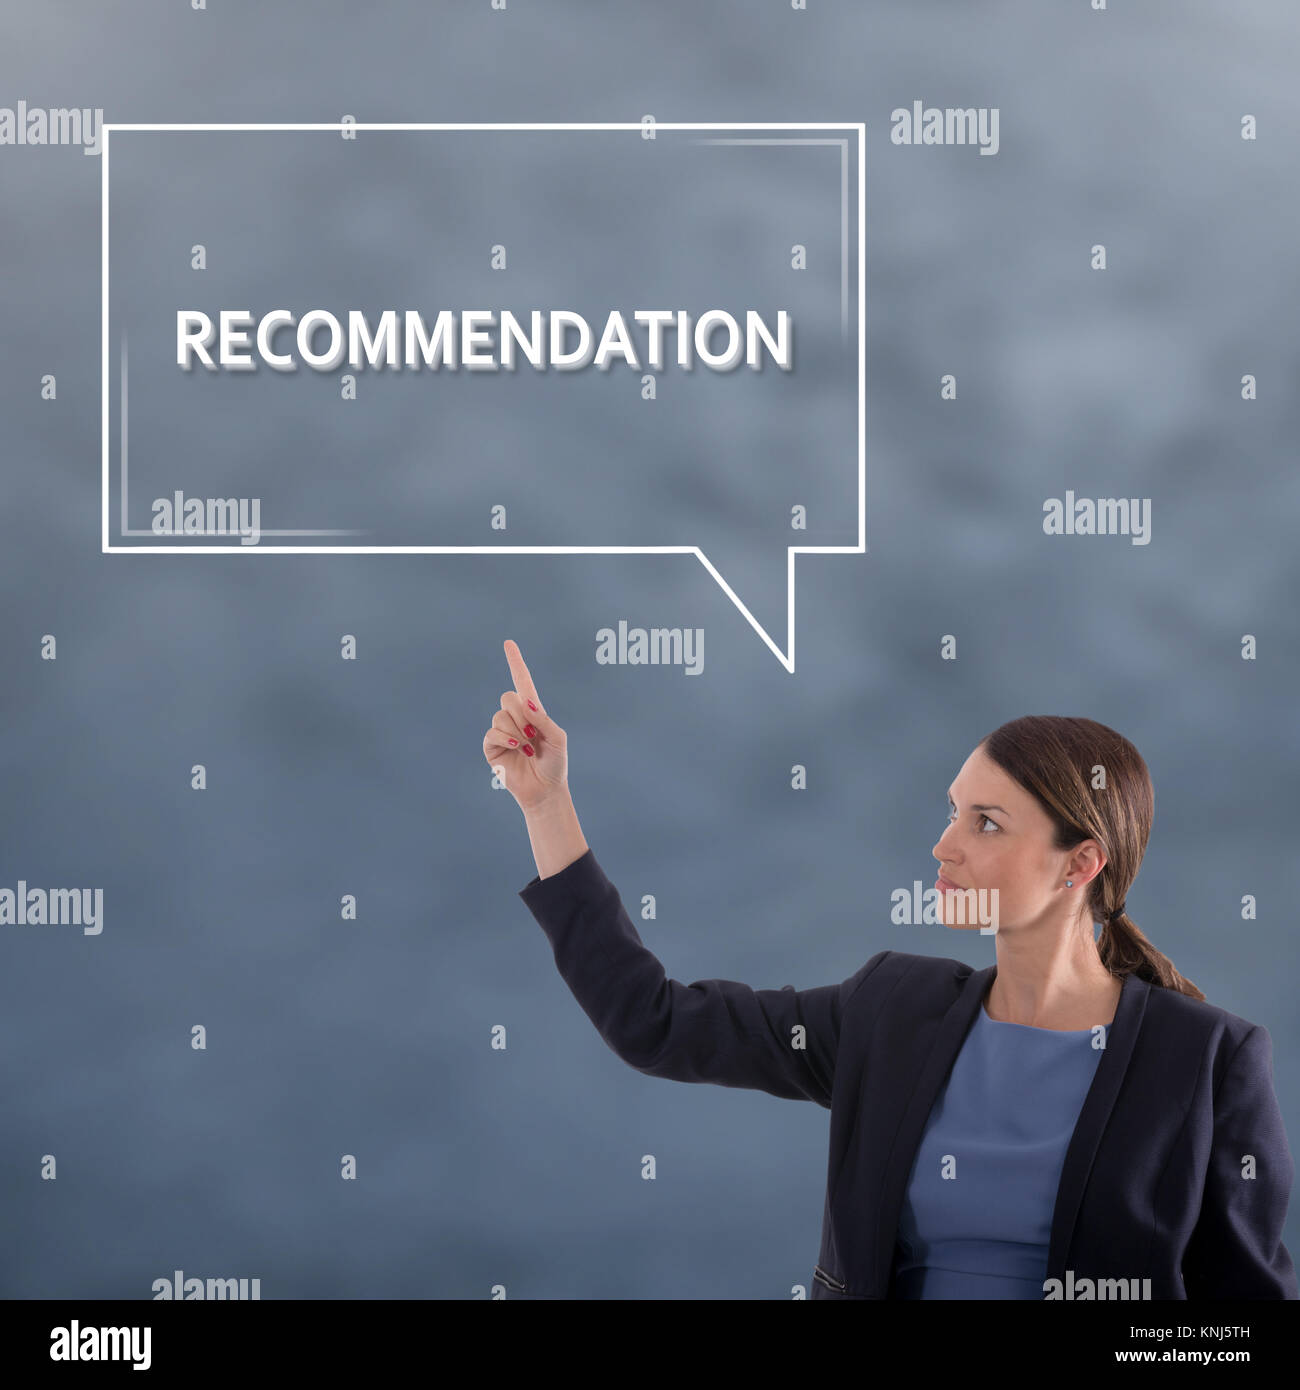 RECOMMENDATION Business Concept. Business Woman Graphic Concept - Stock Image